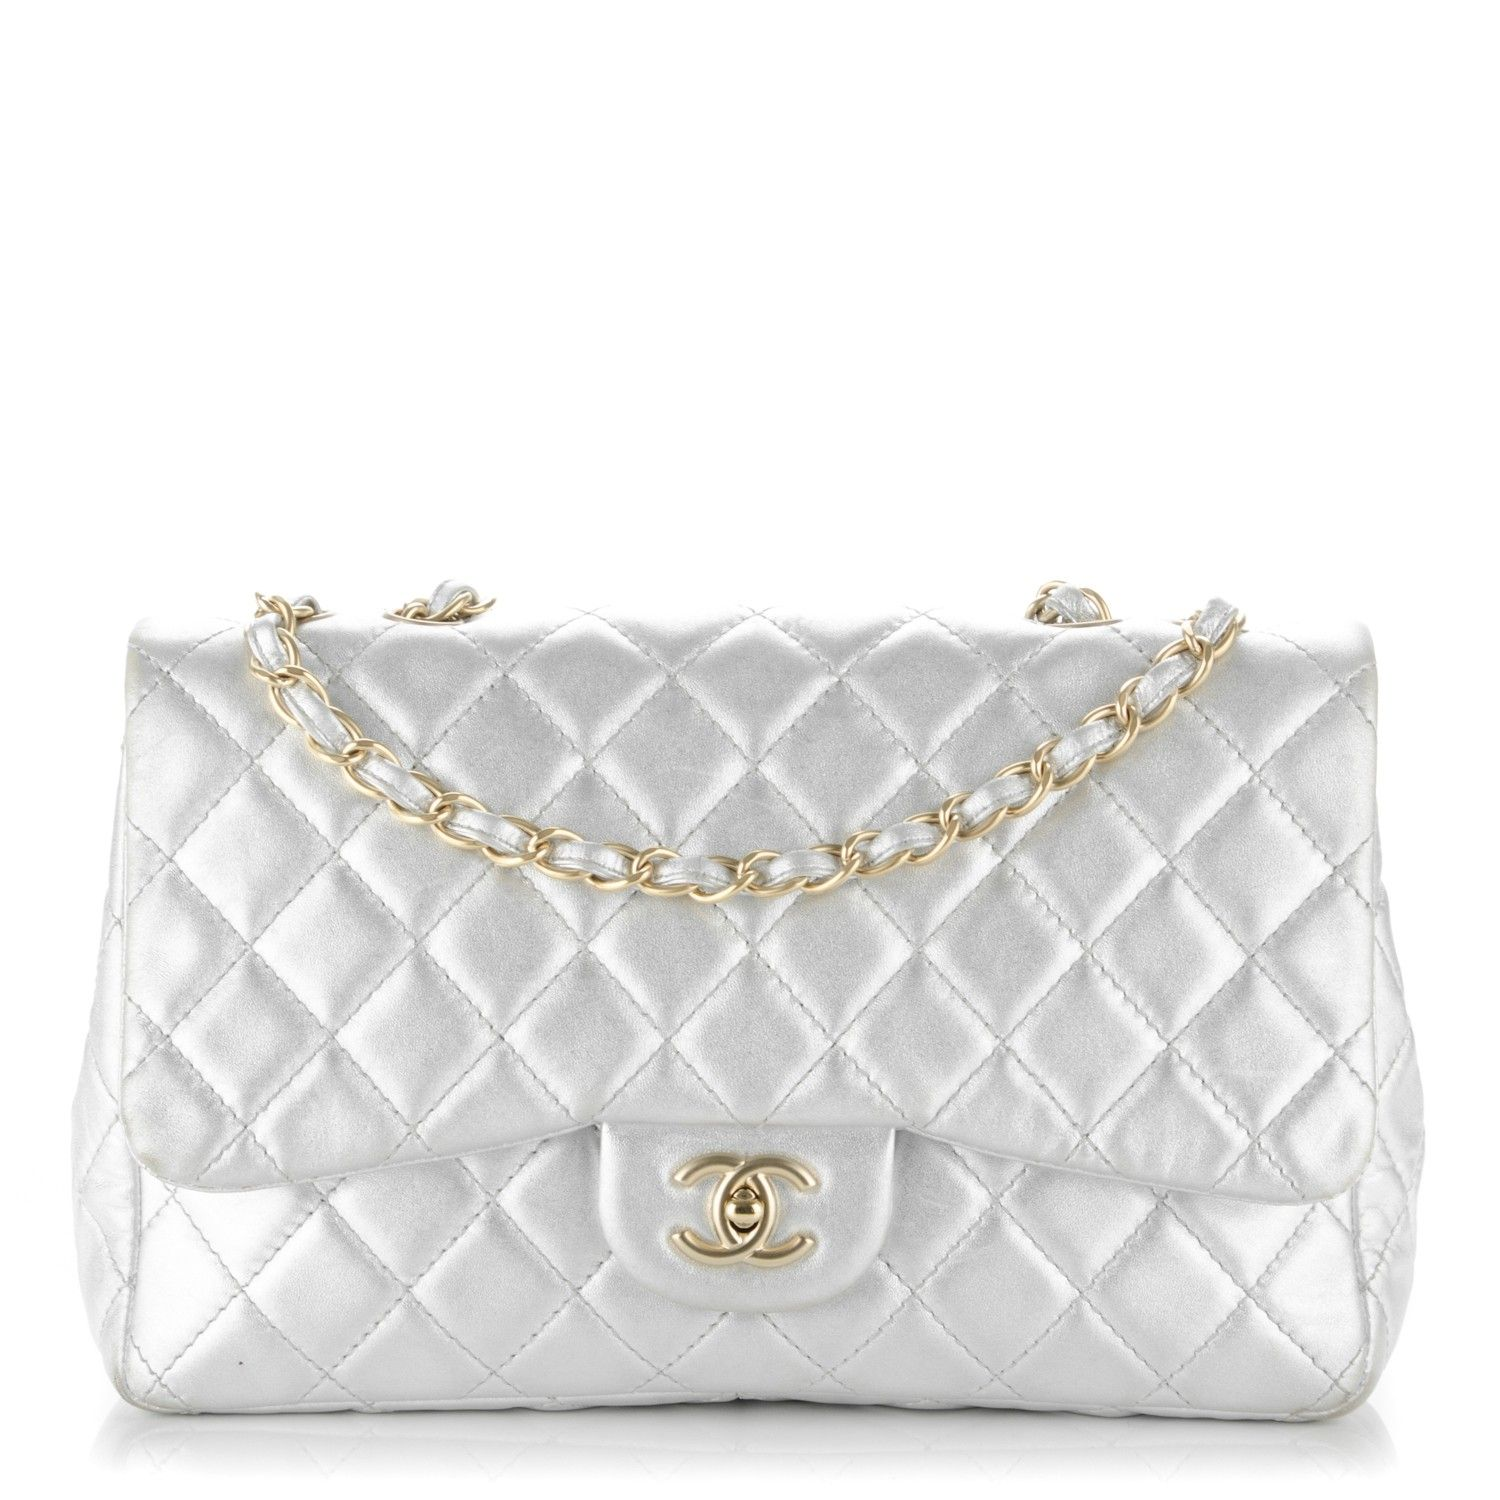 b2006aff176d This is an authentic CHANEL Lambskin Quilted Jumbo Single Flap in Metallic  Silver. This stylish